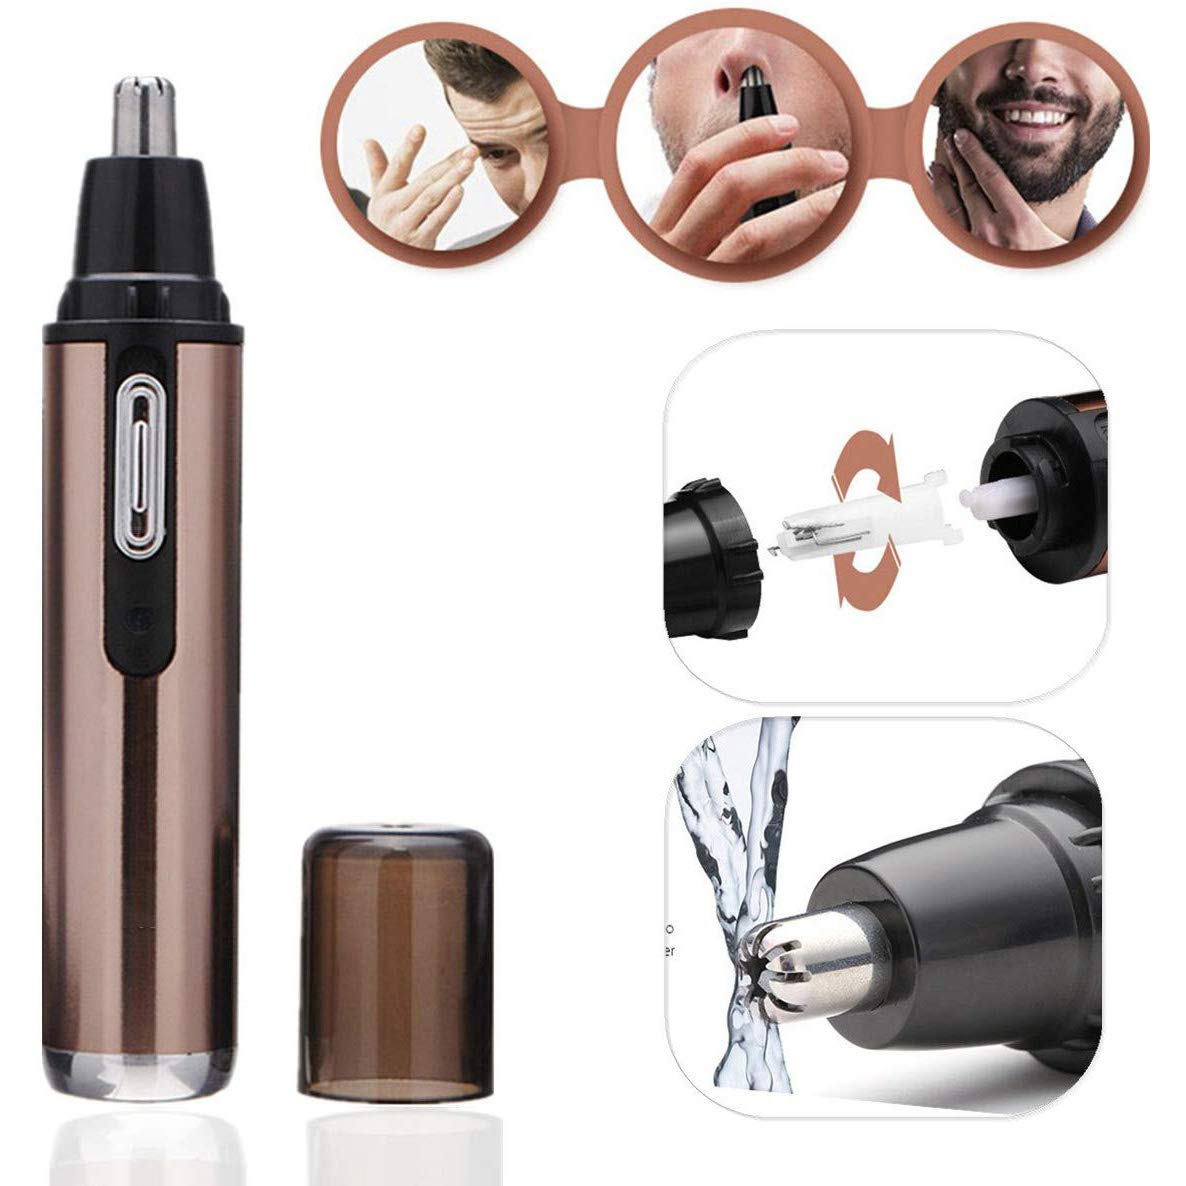 Gun Face Nose Facial Eyebrow Hair Beard Trimmer, Long Nose Hair Trimmer Corded Shaver Ladies Male, Nose-Hair Trimmer Scissors Waterproof Stainless Steel, Mini Chooling Nose Hair Trimmer LED Light by BETTER ANGEL XING